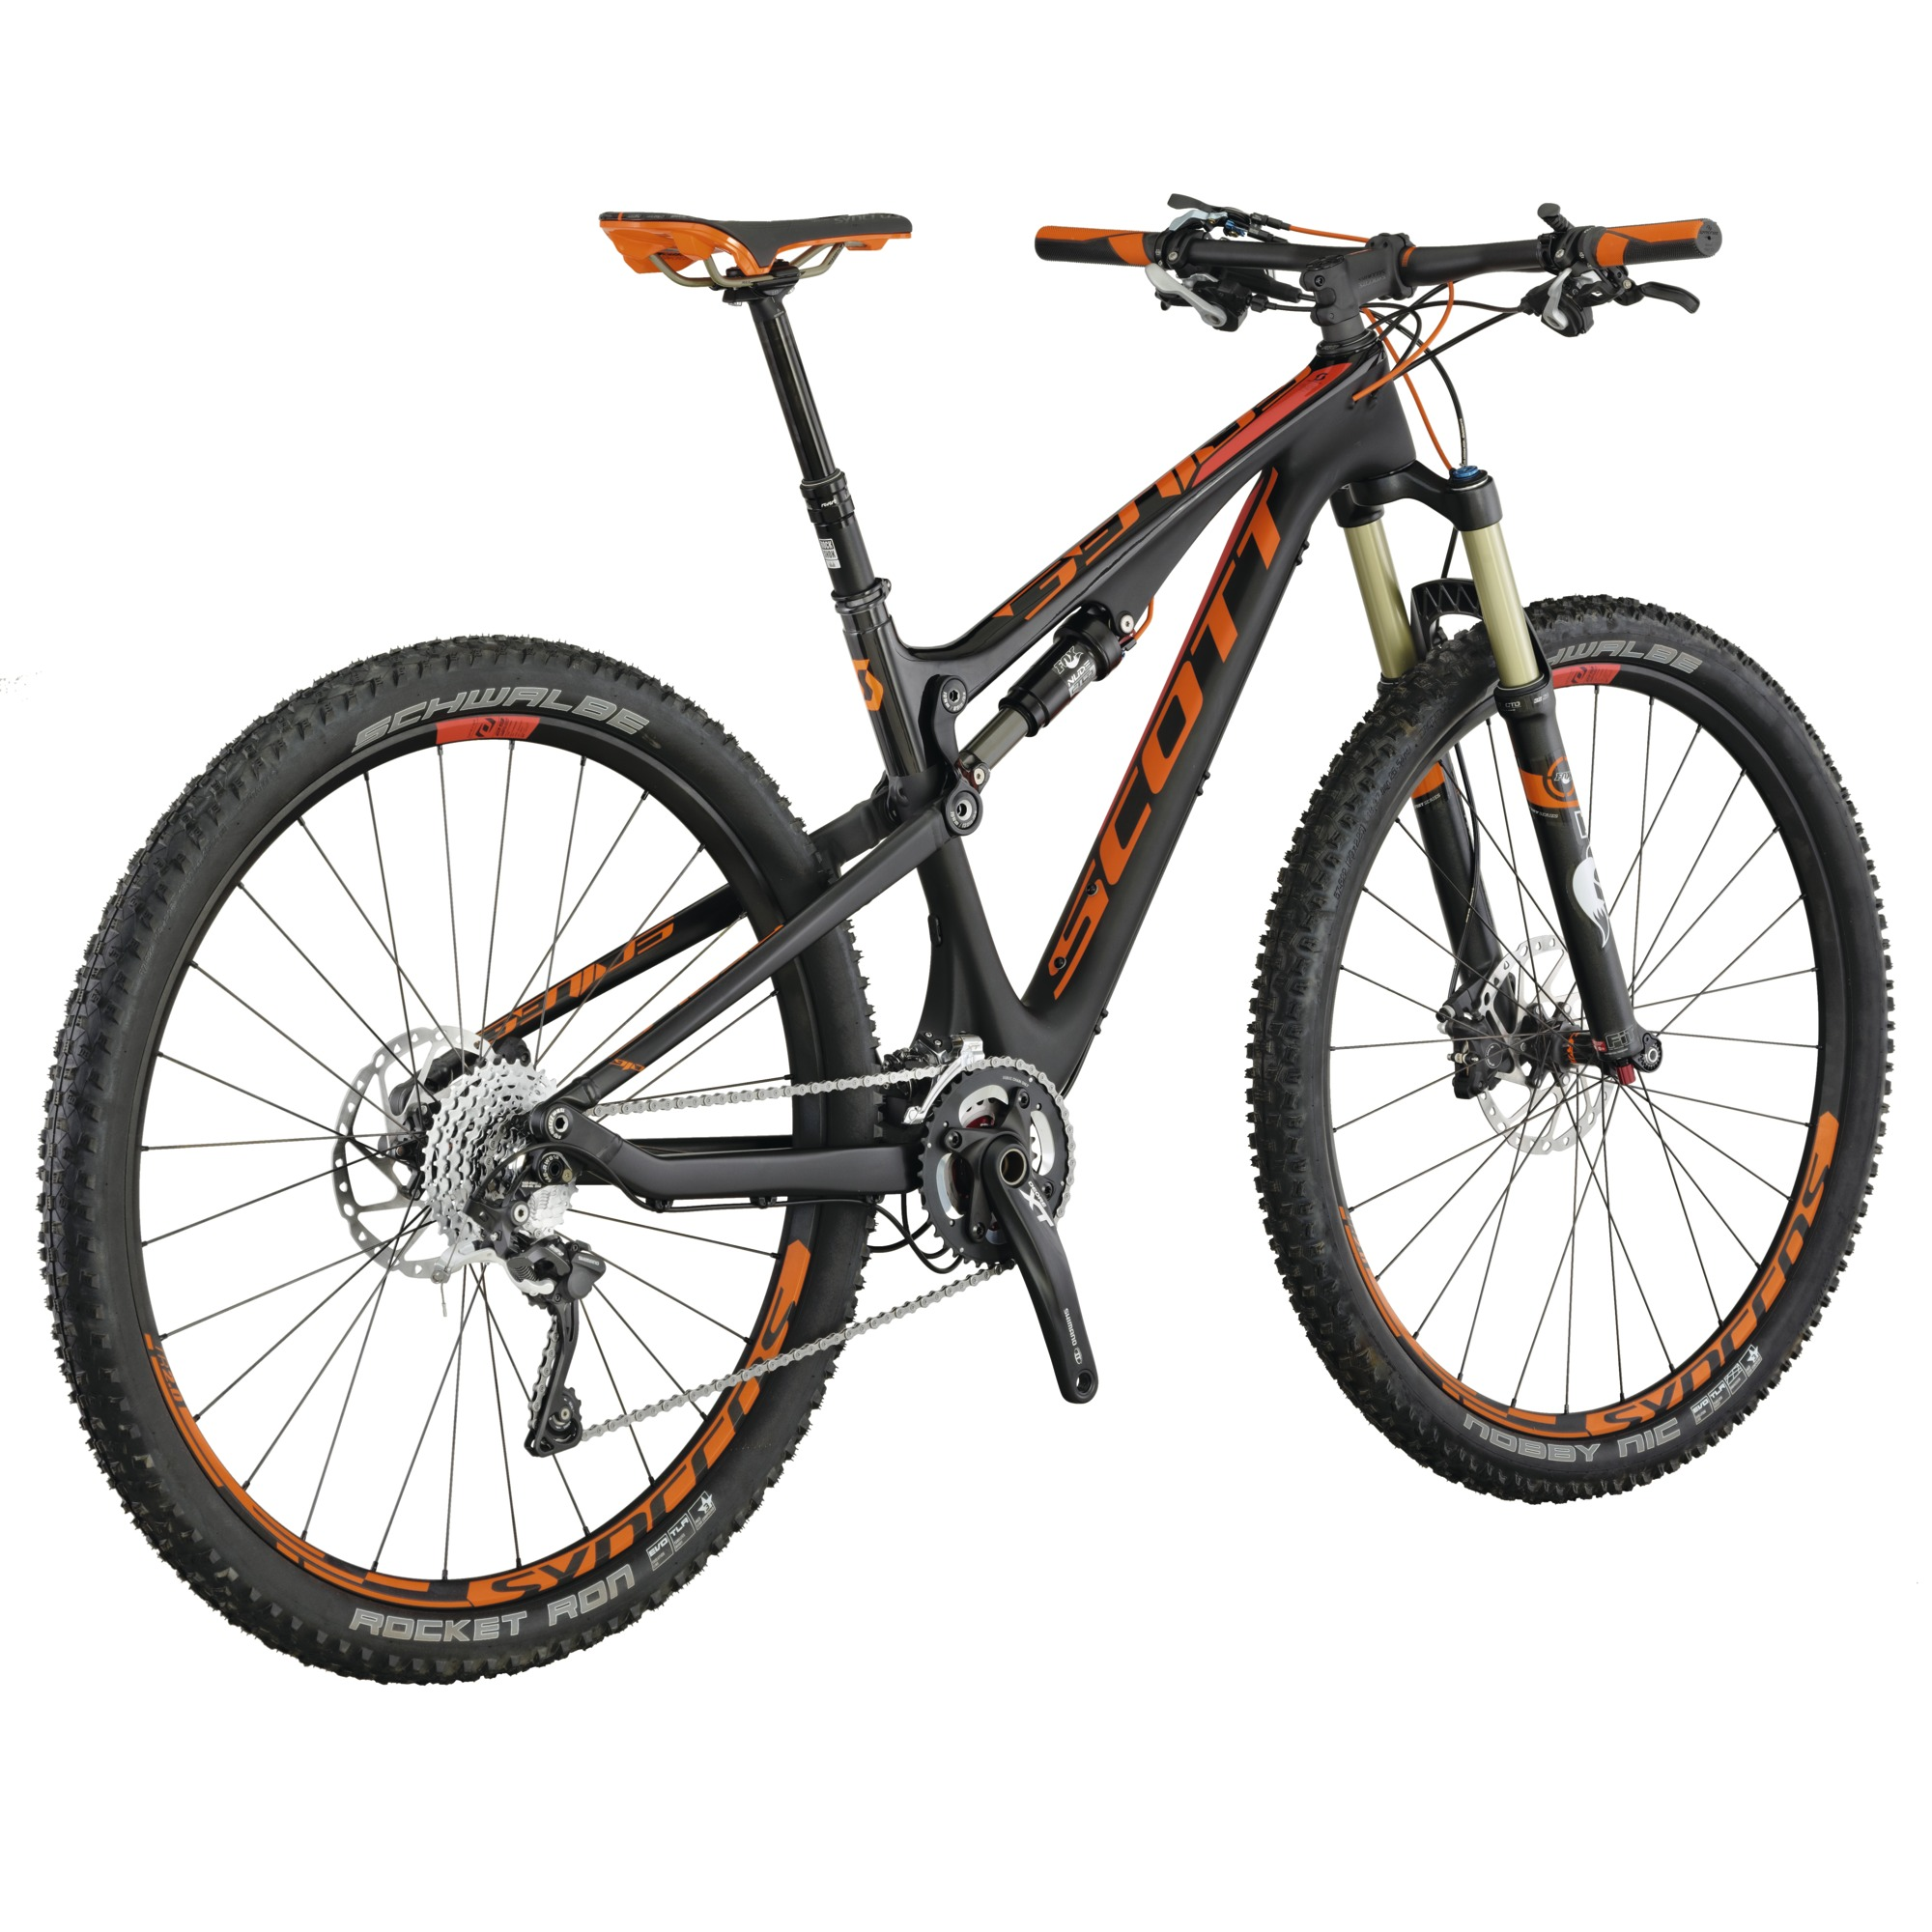 2015 Scott Bikes Spark 910 The SCOTT Genius boasts a